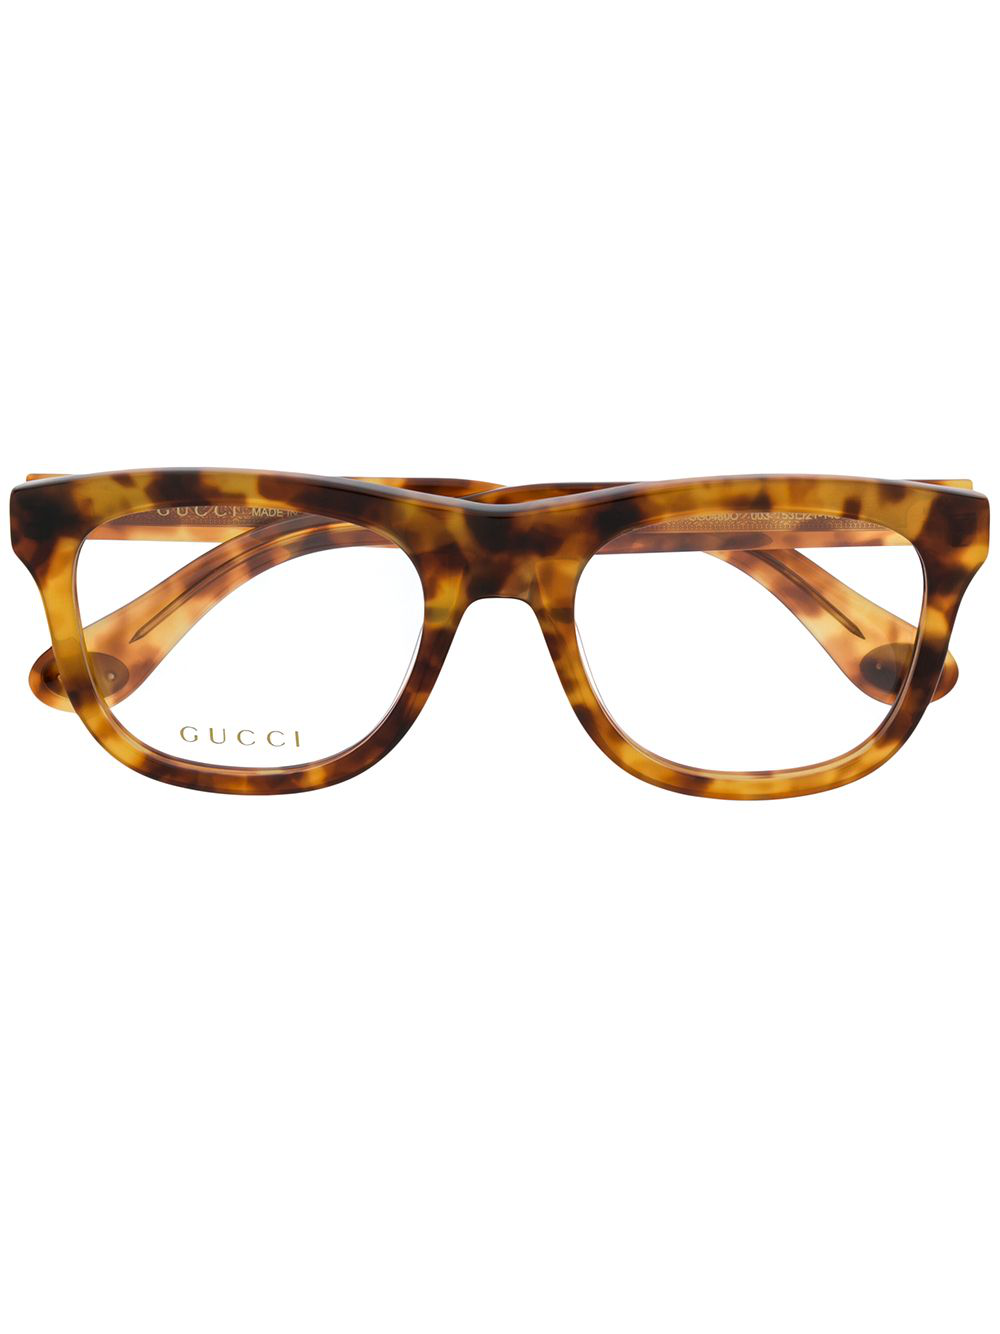 0571408f305 Gucci Eyewear Classic Glasses - Brown